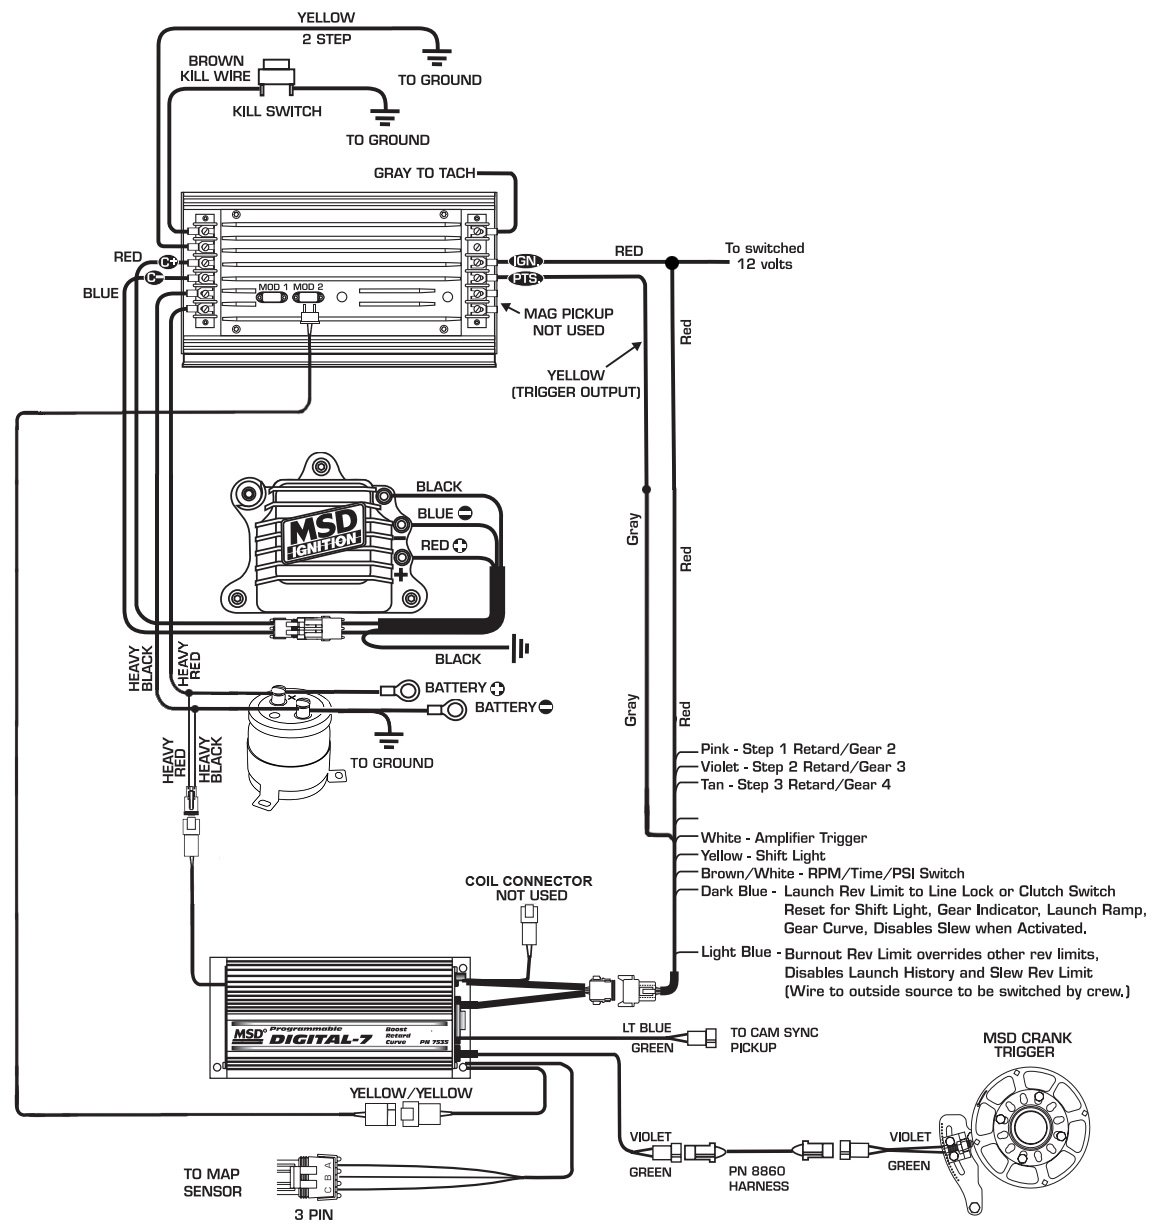 Tac Wire Diagram Change Your Idea With Wiring Design Tachometer Schematic Tel 2 24 Images Tach For 80 Corvette